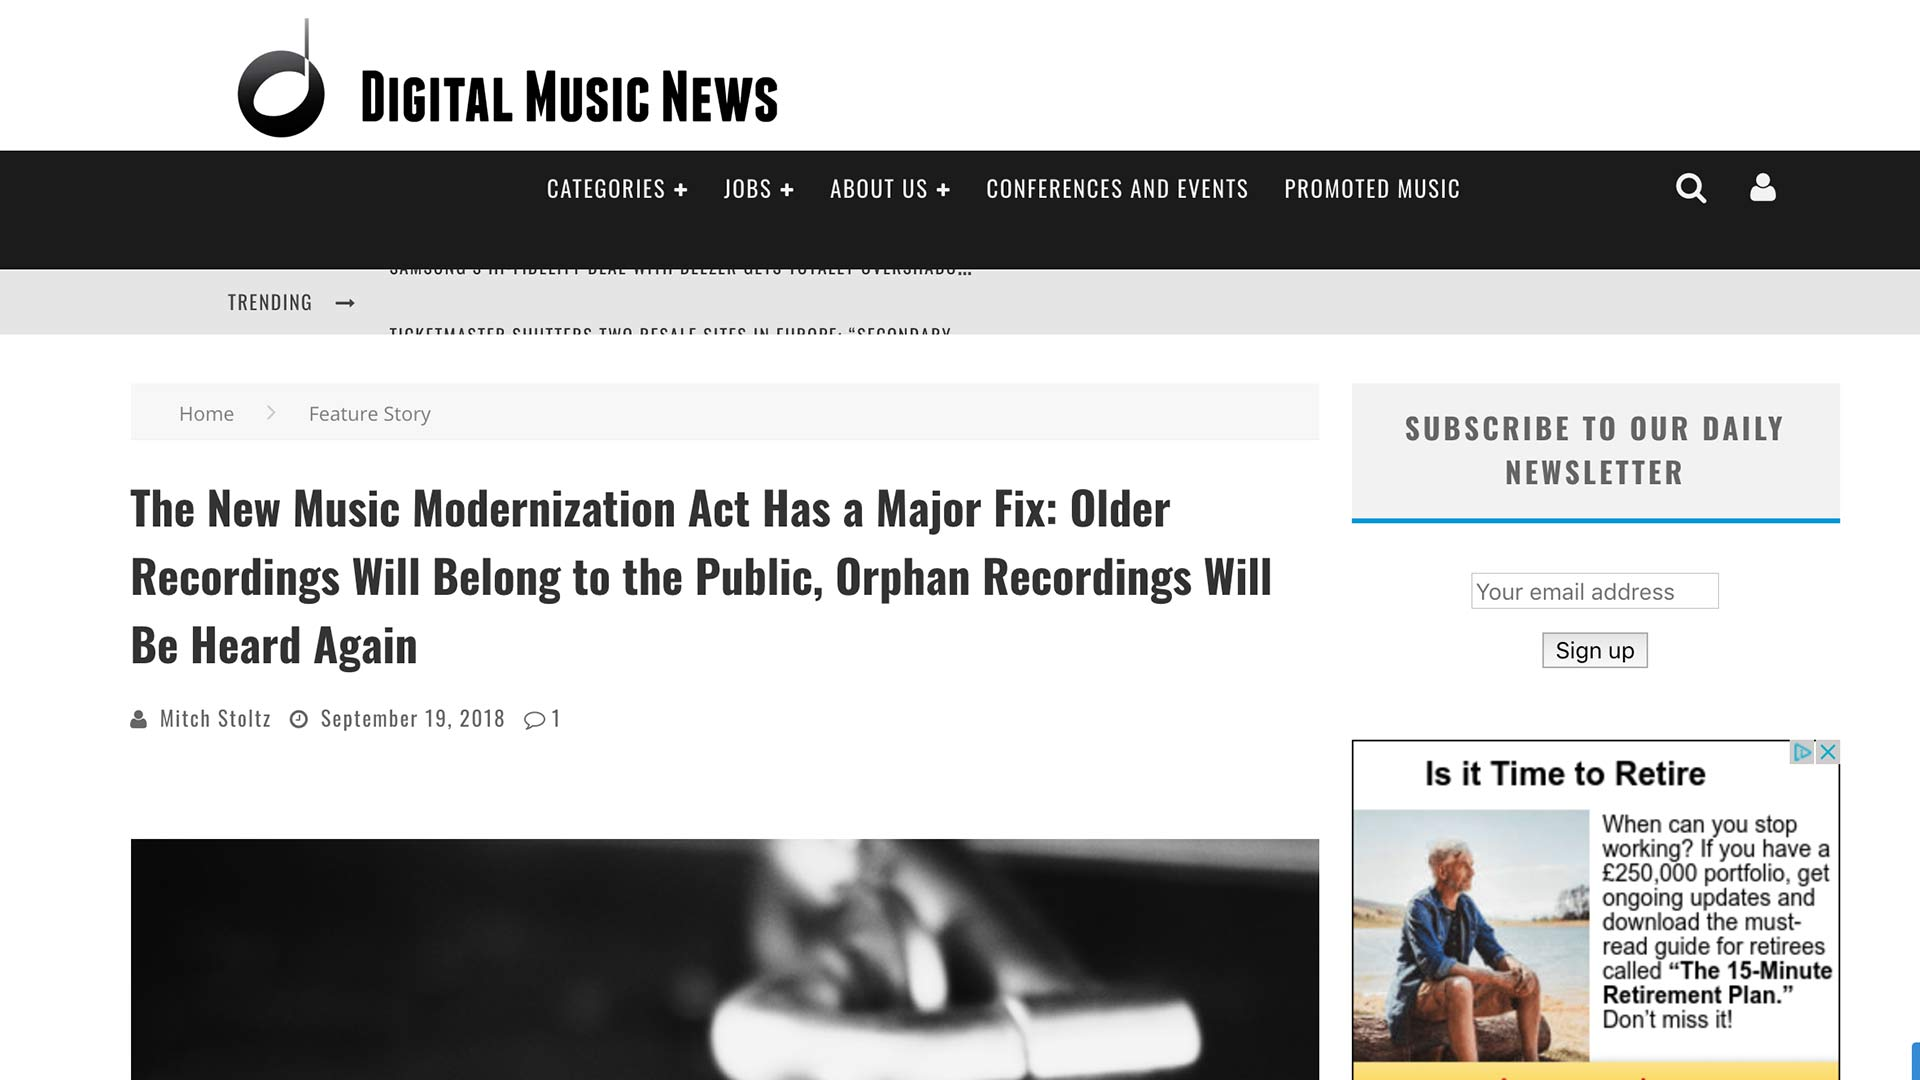 Fairness Rocks News The New Music Modernization Act Has a Major Fix: Older Recordings Will Belong to the Public, Orphan Recordings Will Be Heard Again